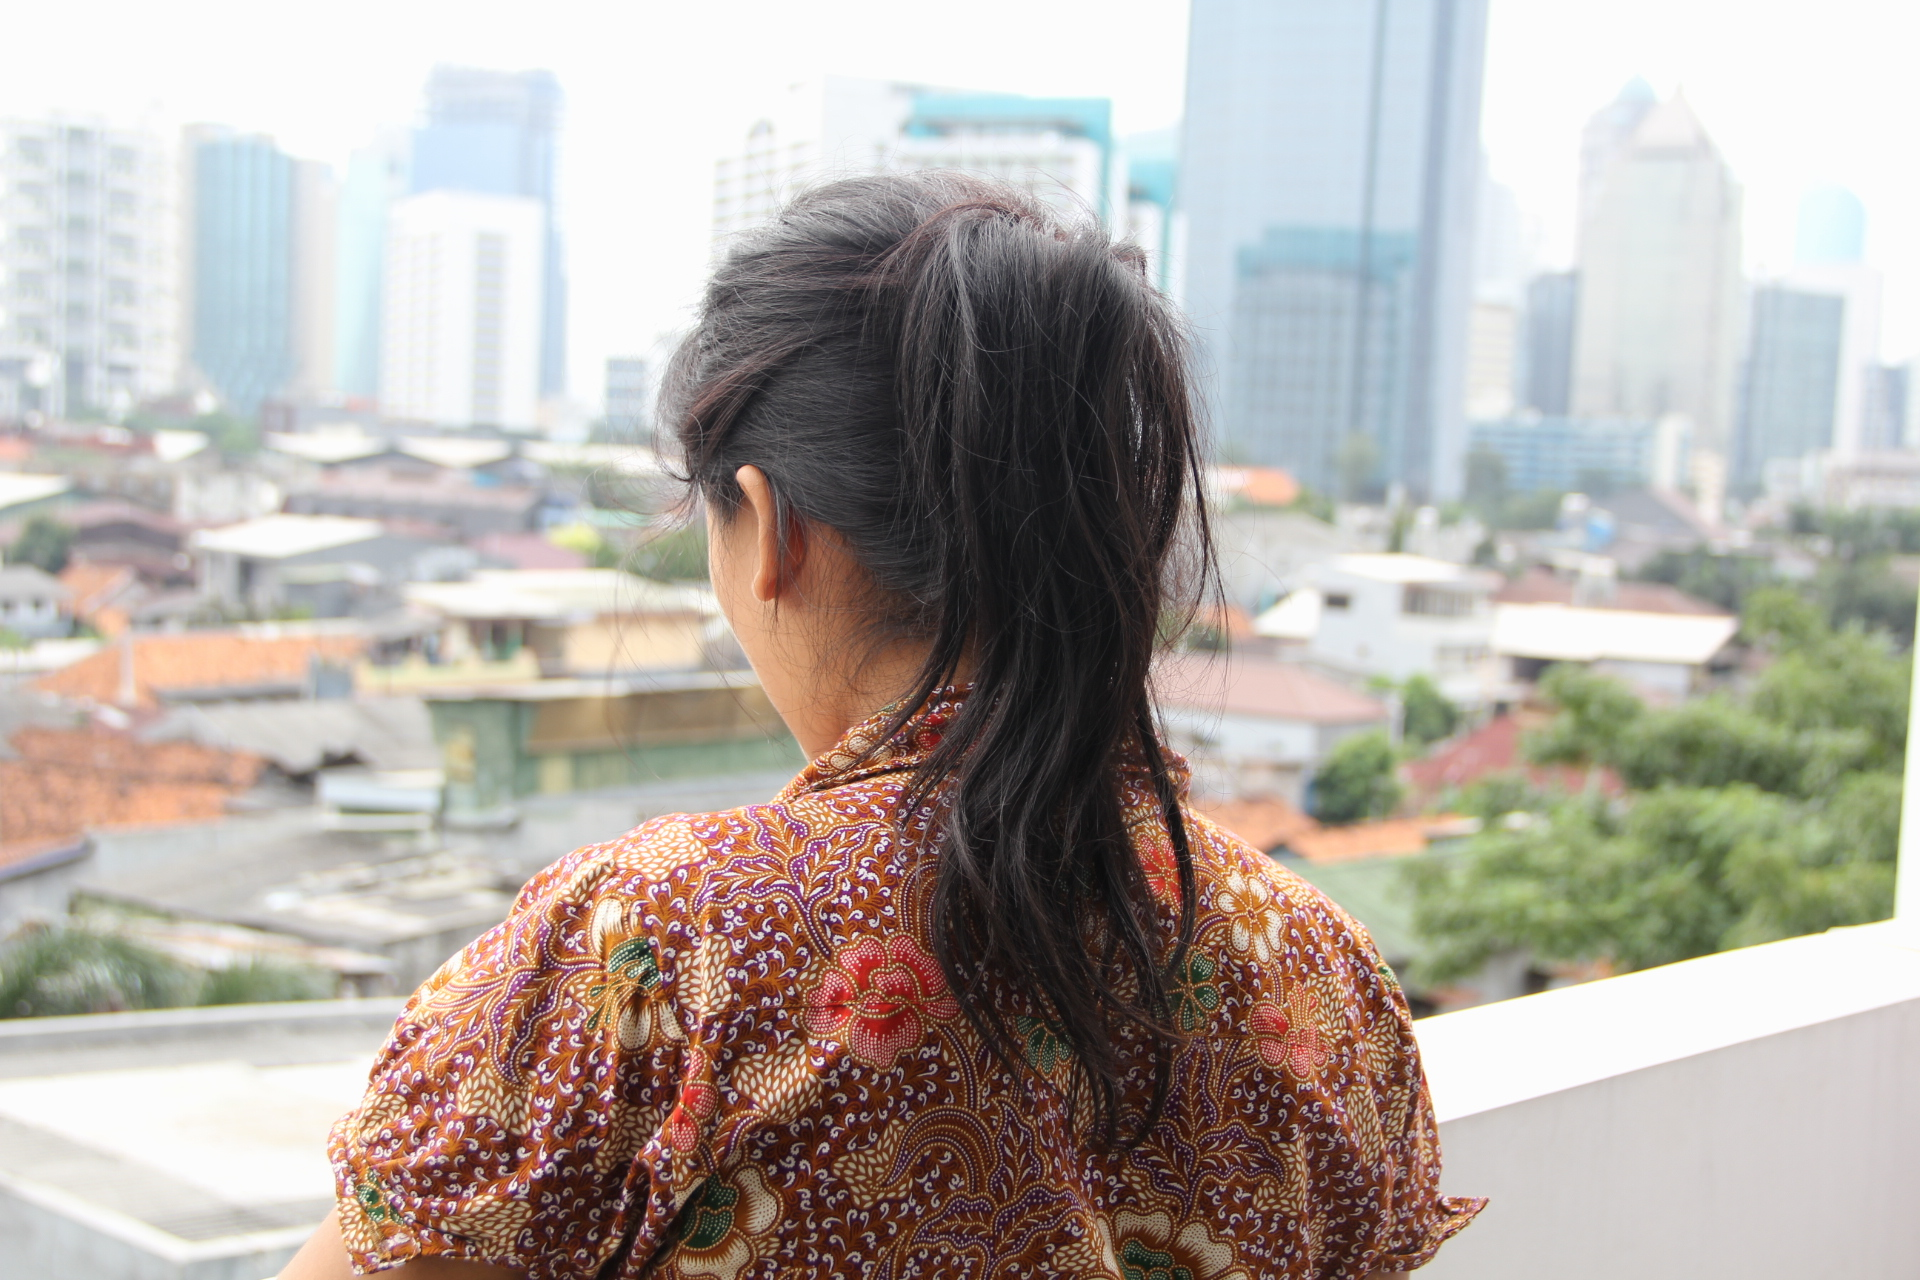 Santi was molested when she was 14. Thousands of Indonesian women fall victim to sexual violence each year